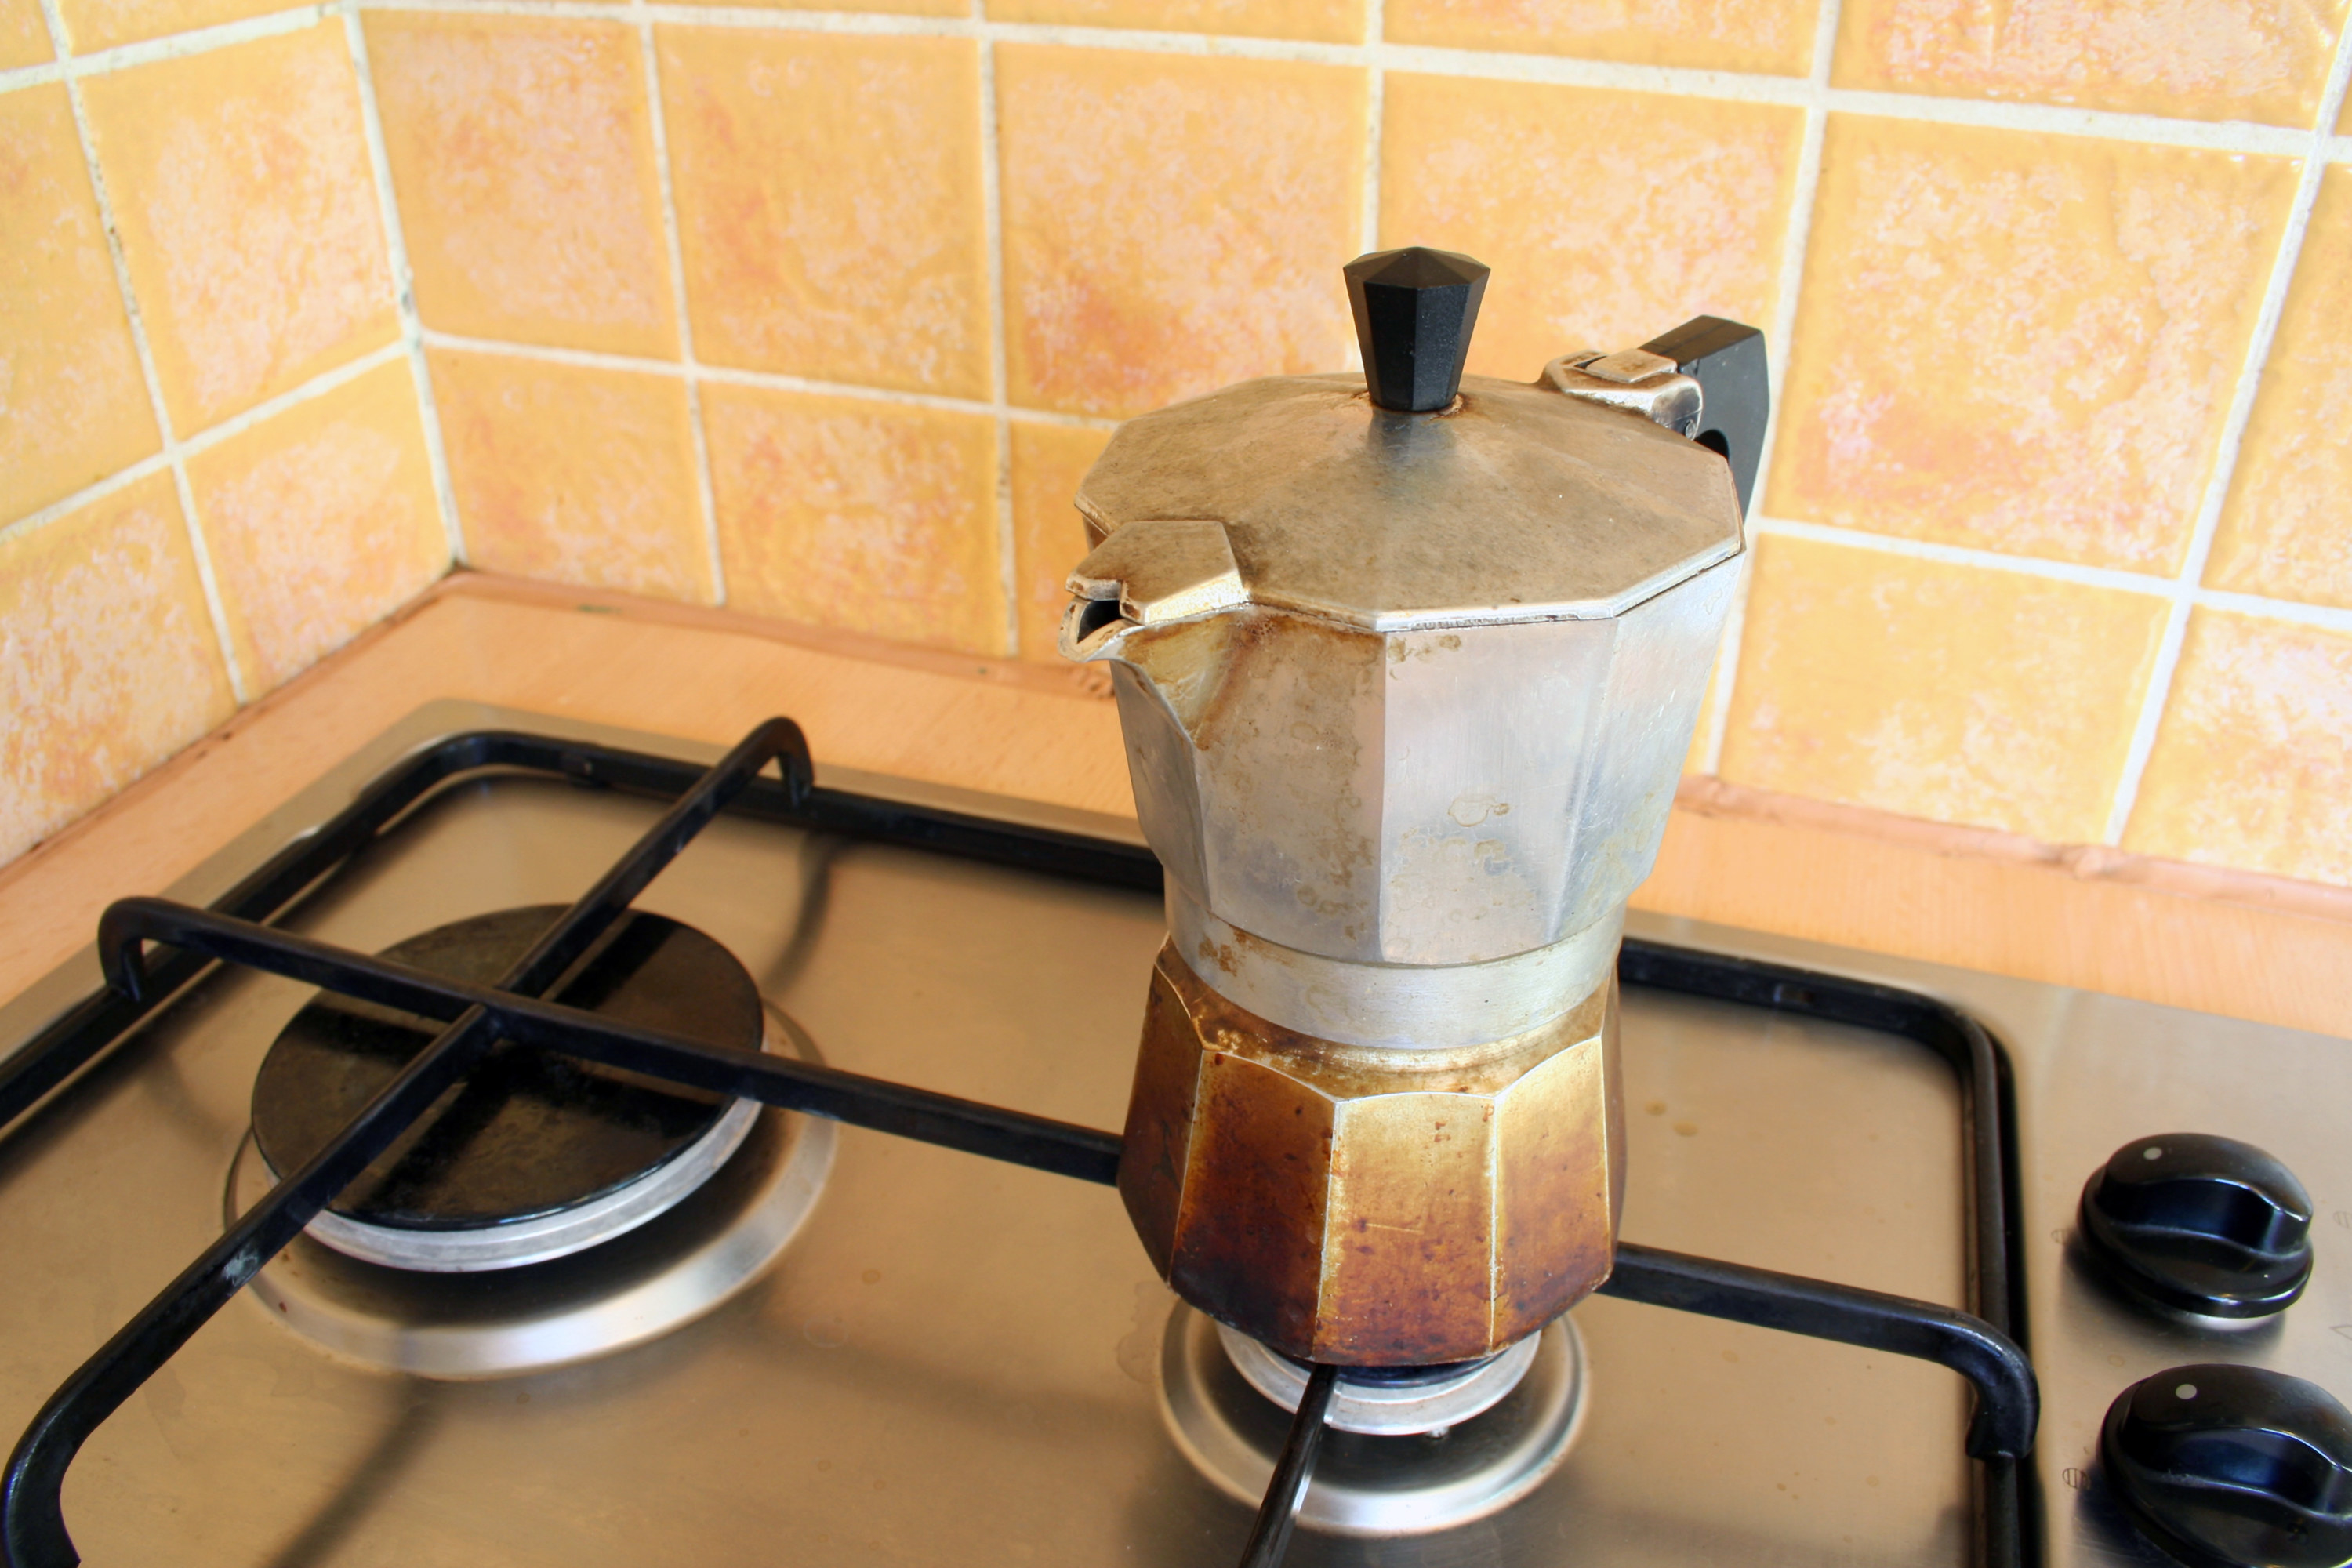 A stove-top espresso maker that had the bottom all burned at and the top is stained from use